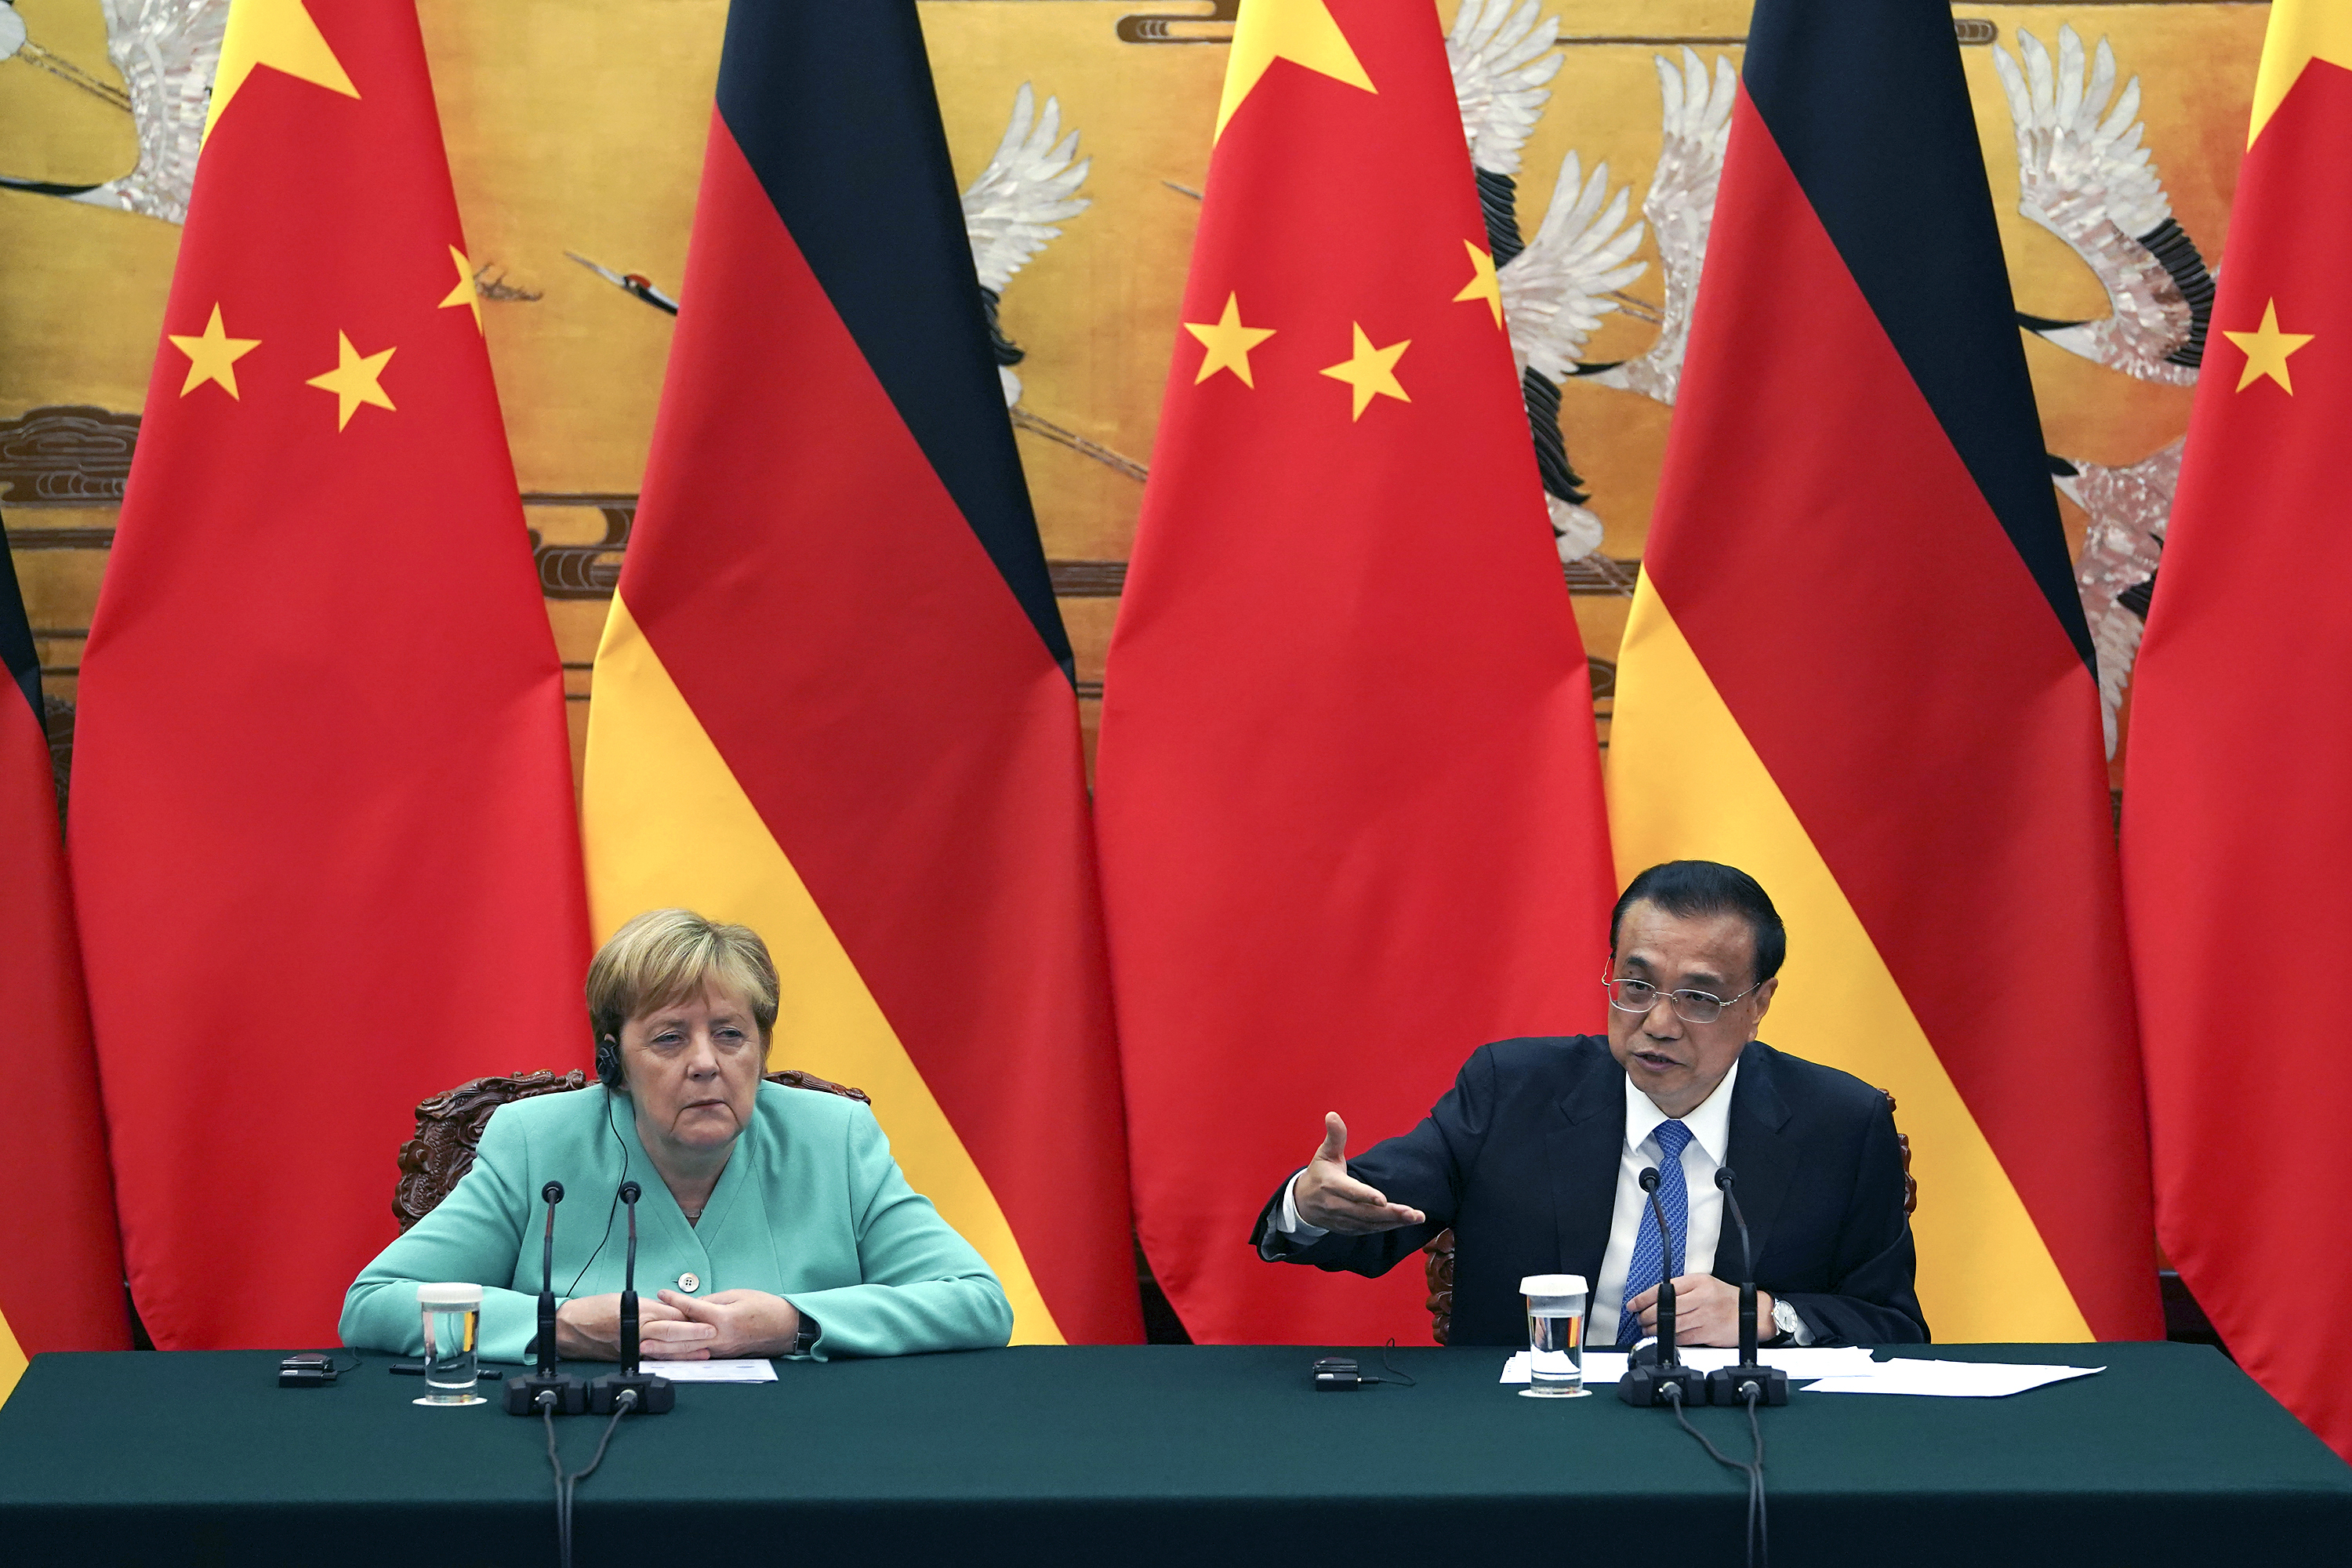 Merkel: Germany must engage in rights dialogue with China